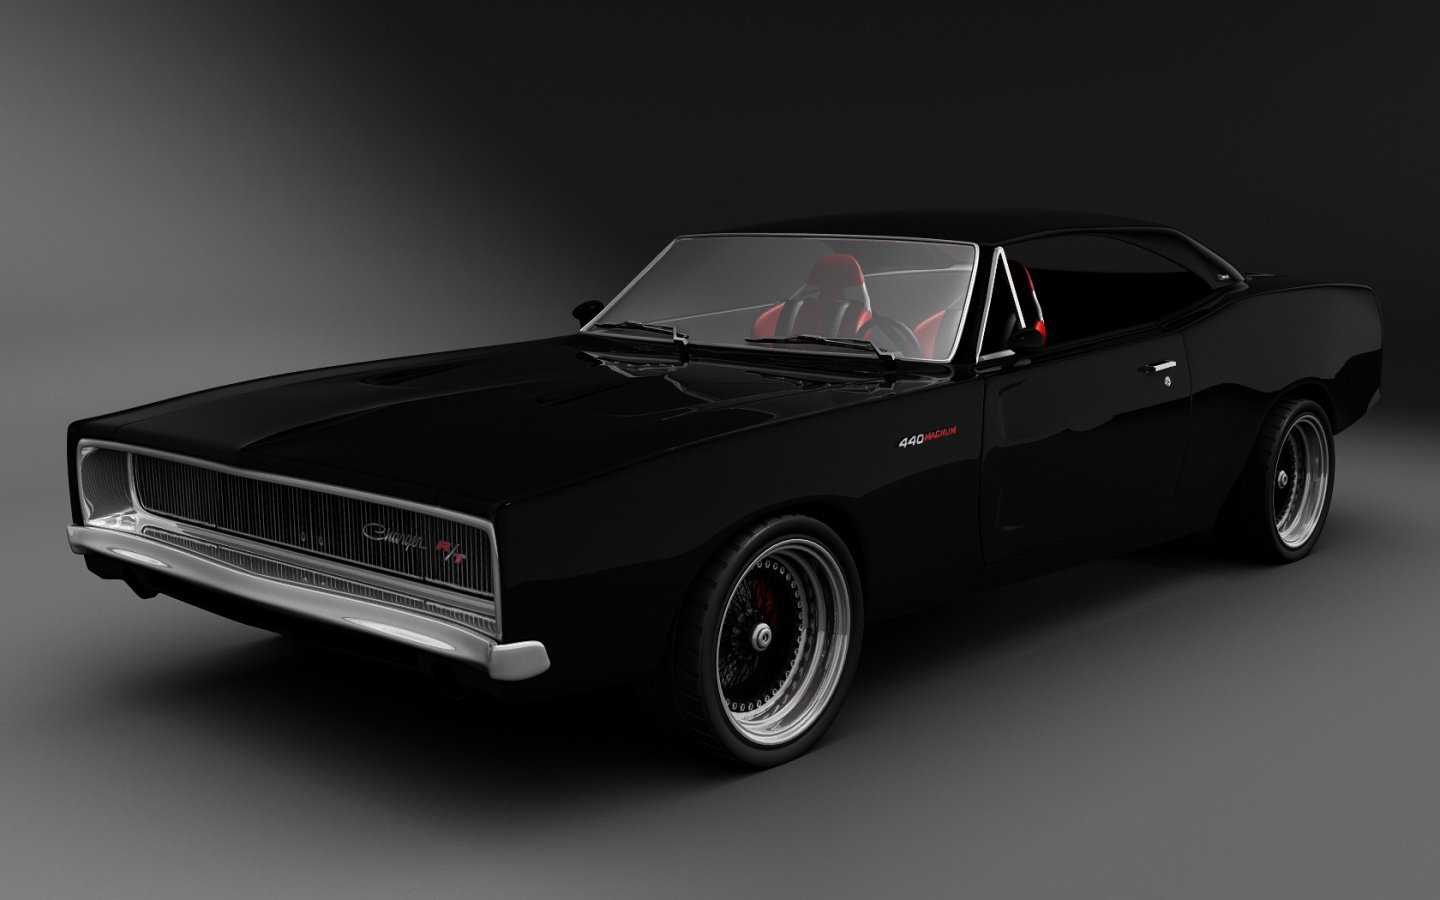 Dodge Charger RT Wallpaper 14   1440 X 900 stmednet 1440x900